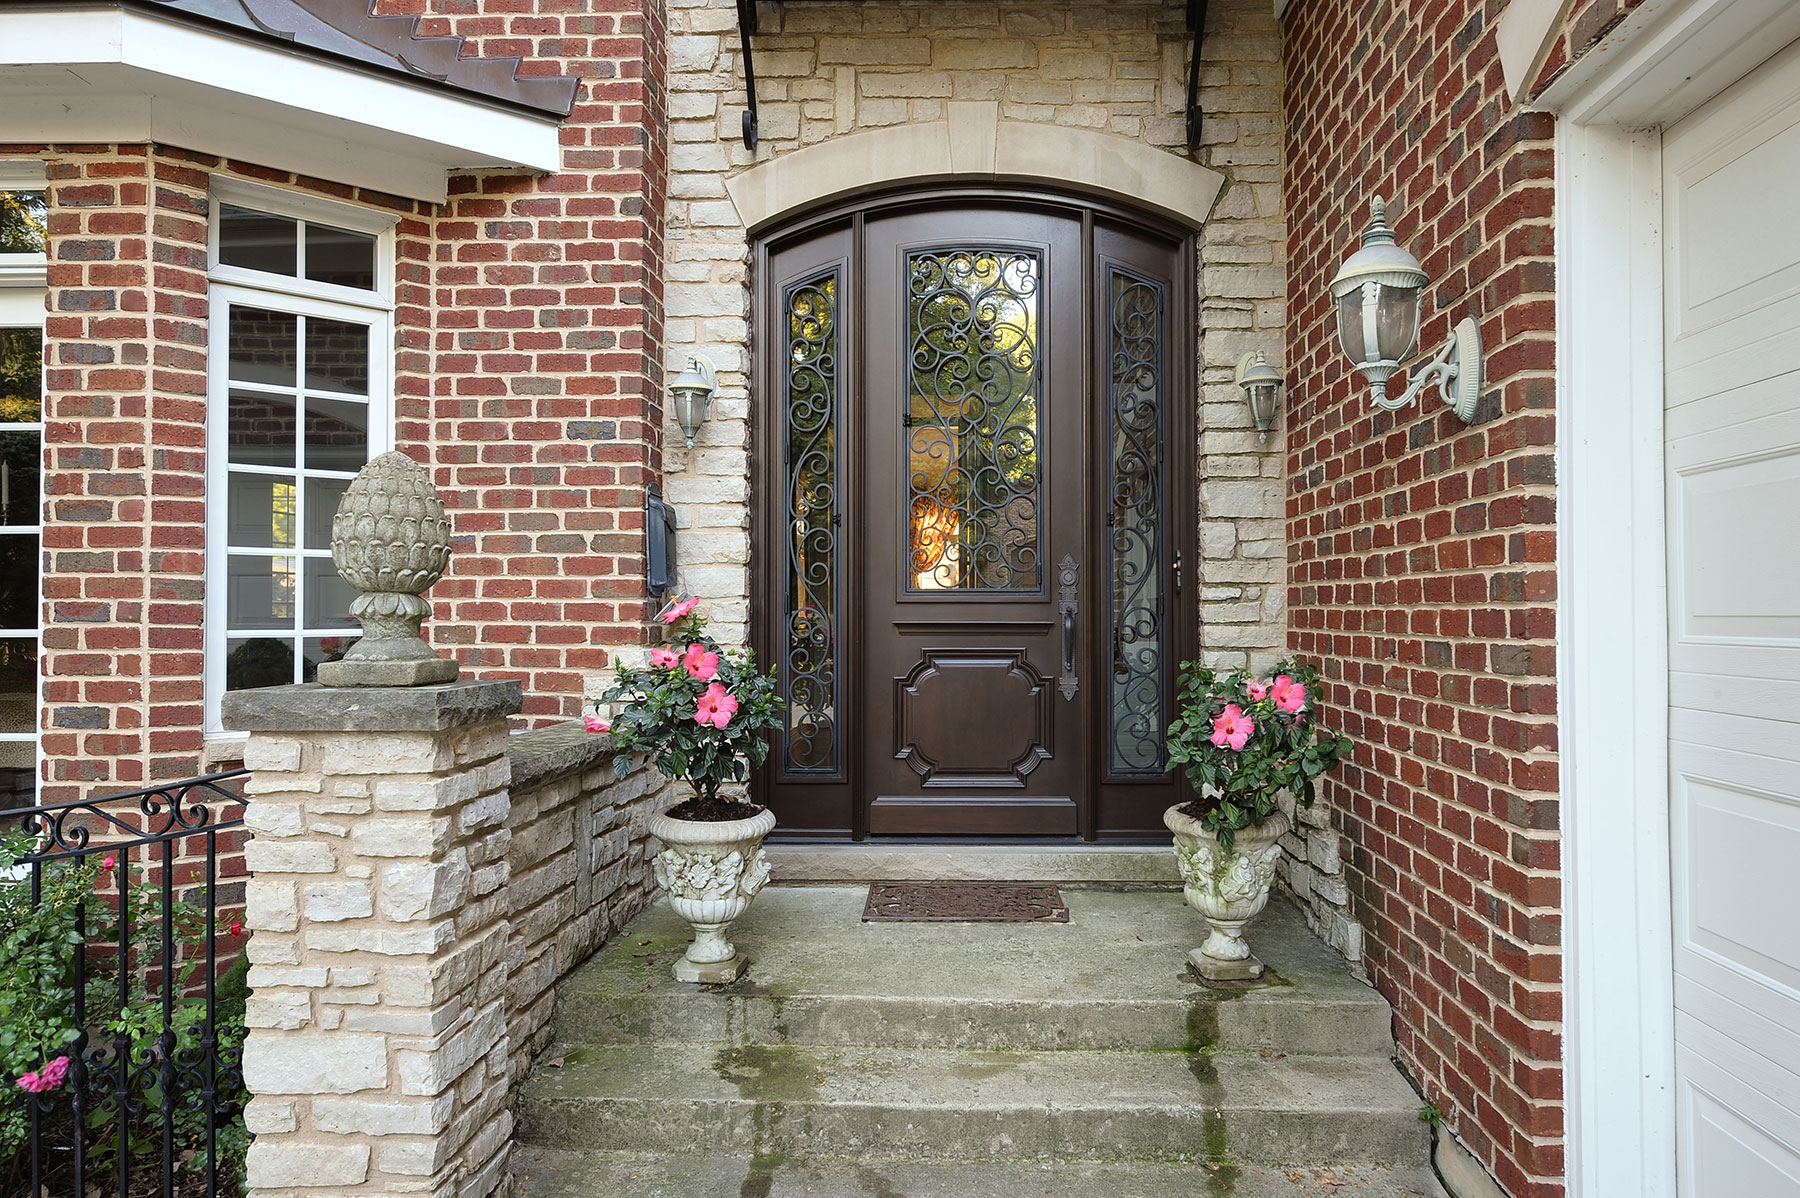 Custom Wood Front Entry Doors | Custom Solid Mahogany Wood Door with Two Sidelites and Wrought Iron, Heritage Collection, Exterior View DB-H003 2SL F CST - Glenview Doors - Custom Doors in Chicago